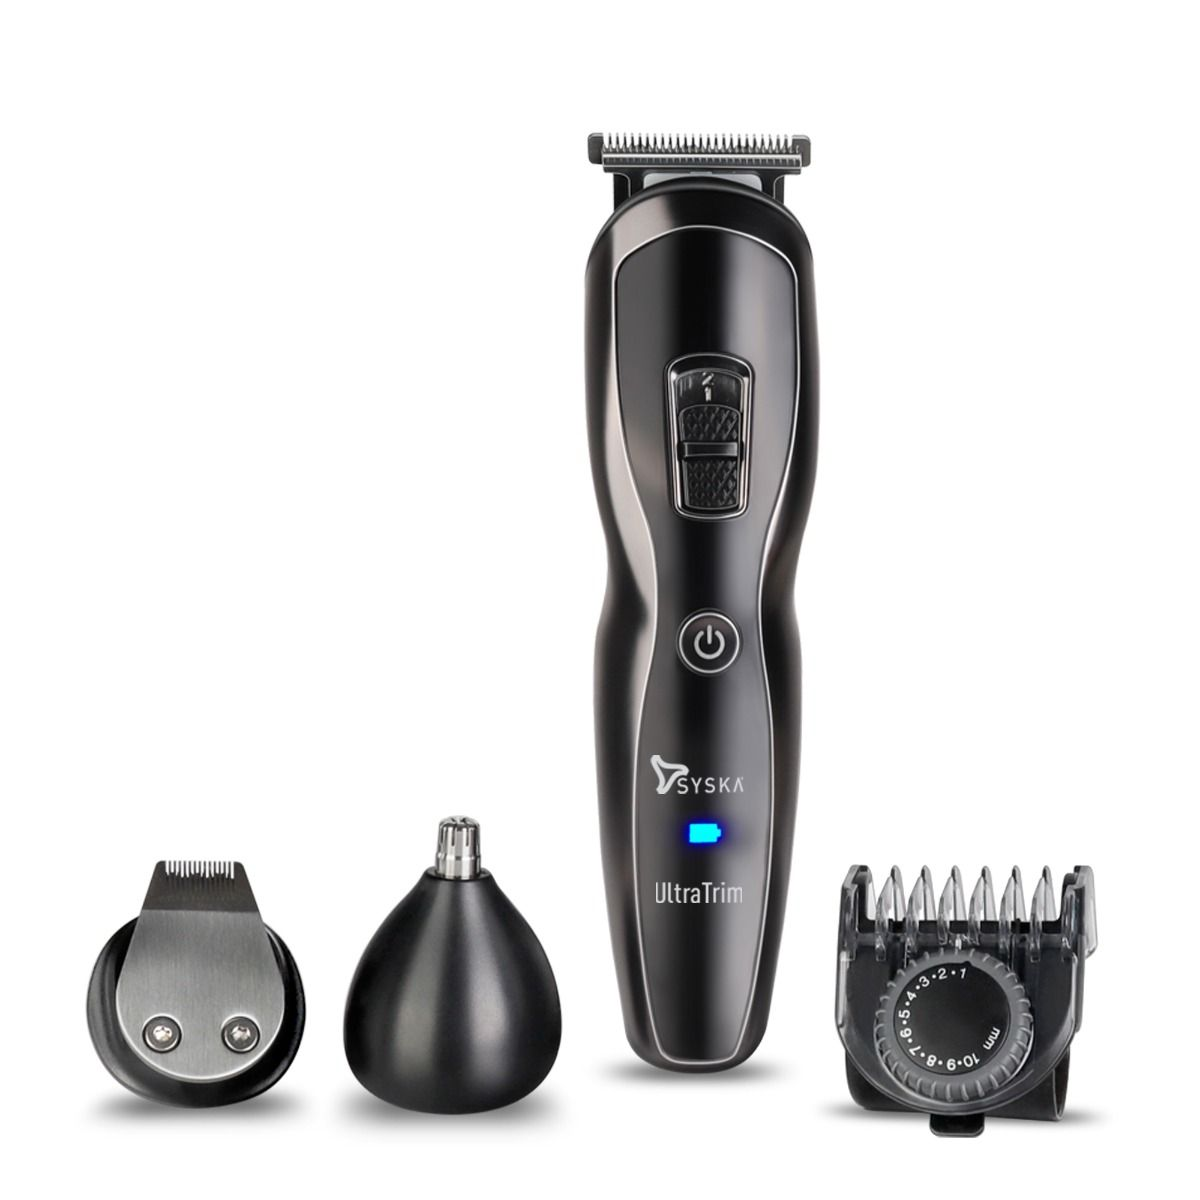 Syska HT3333K UltraTrim ProStyling Grooming Kit Runtime: 60 min Trimmer for Men (Black)